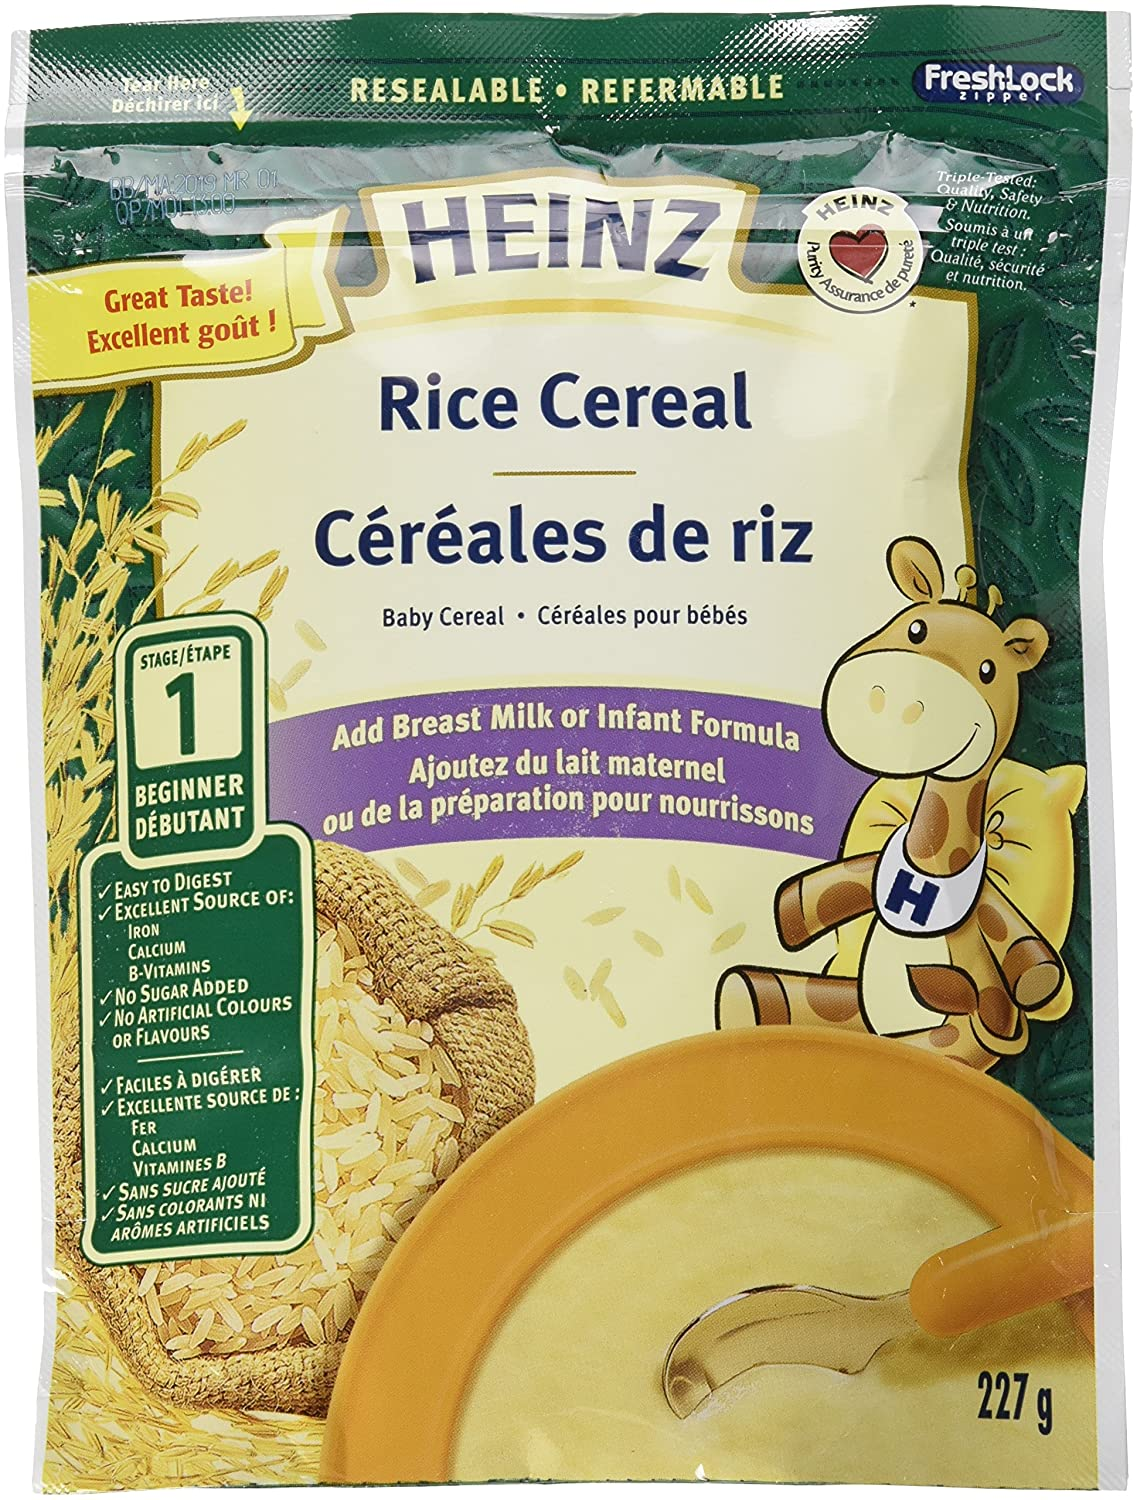 HEINZ Rice Cereal - No Milk, 6 Pack, 227G Each Kraft Heinz Canada ULC